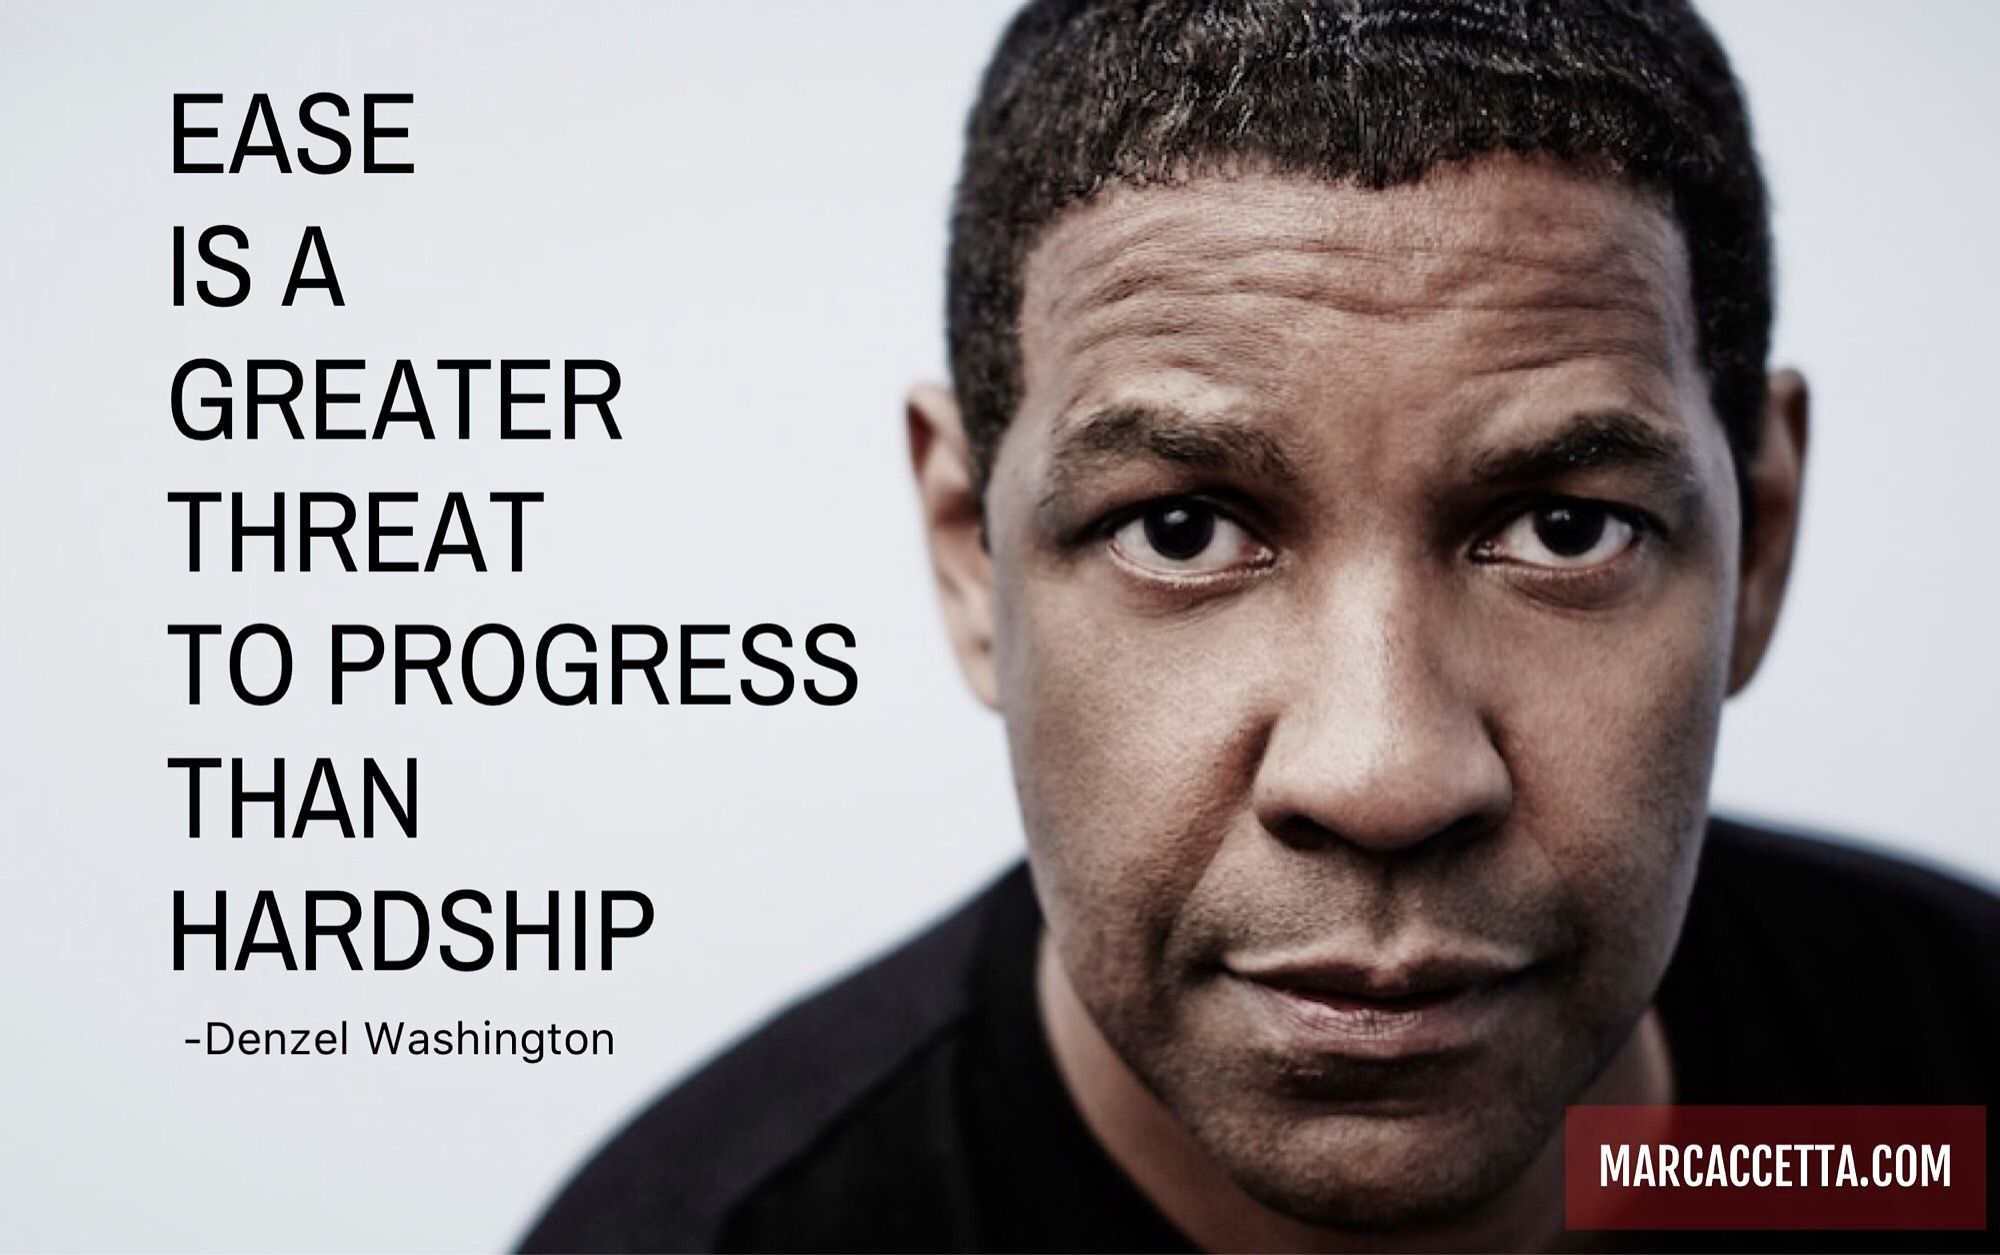 Denzel Washington Quotes Ease Is A Greater Threat To Progress Than Hardship Quotes